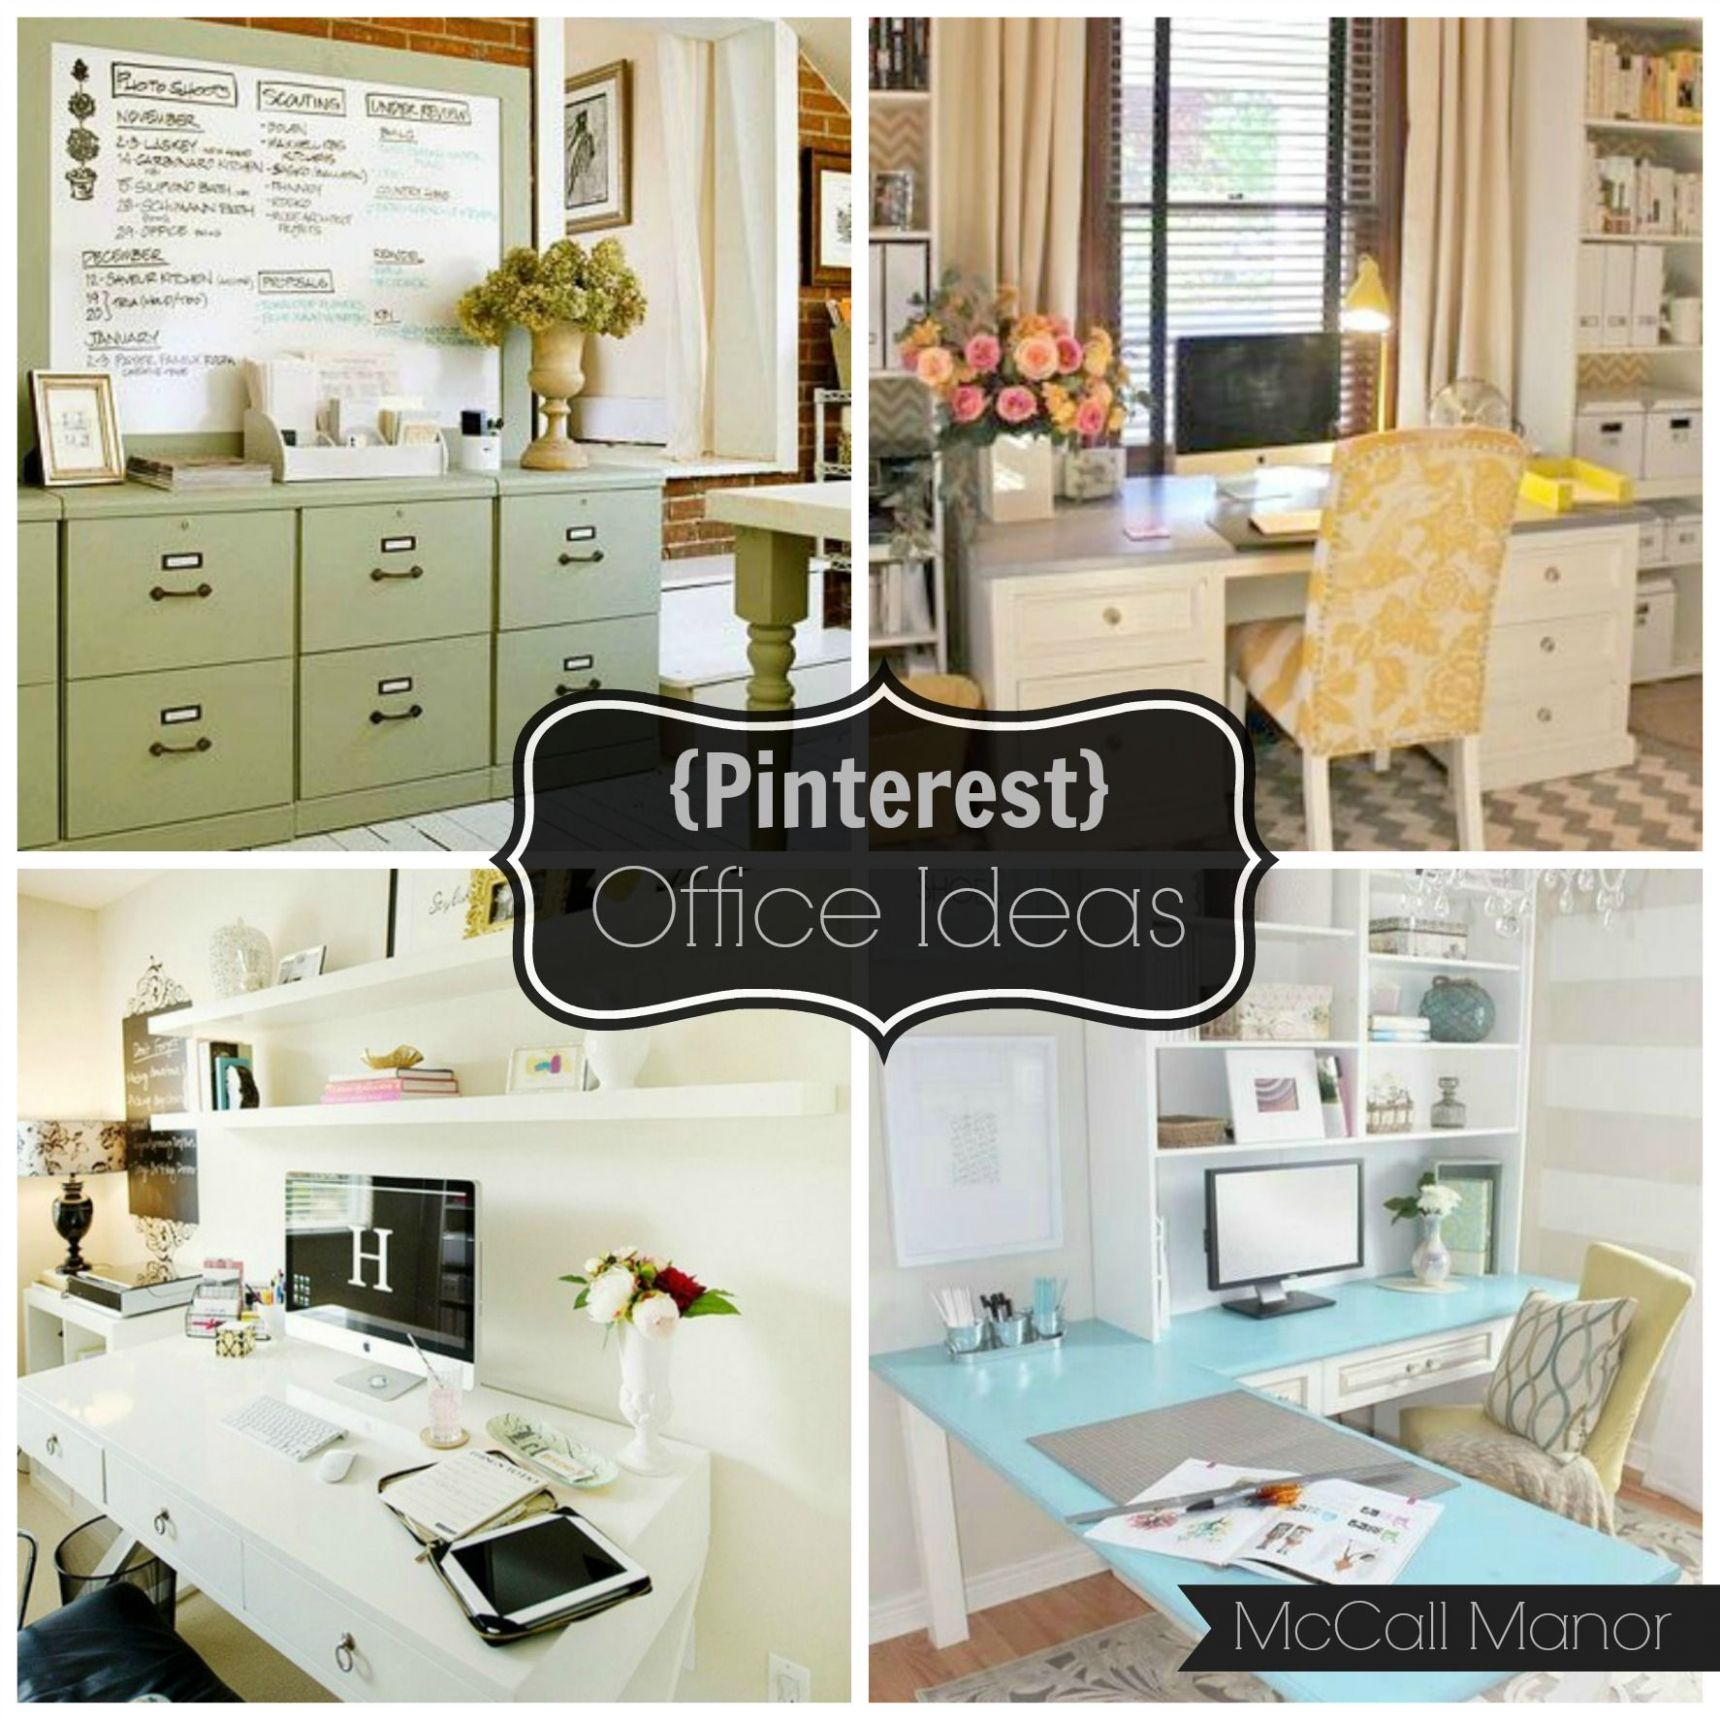 Pinterest Home Office Dekoration Ideen - | Home office, Dekoration ...